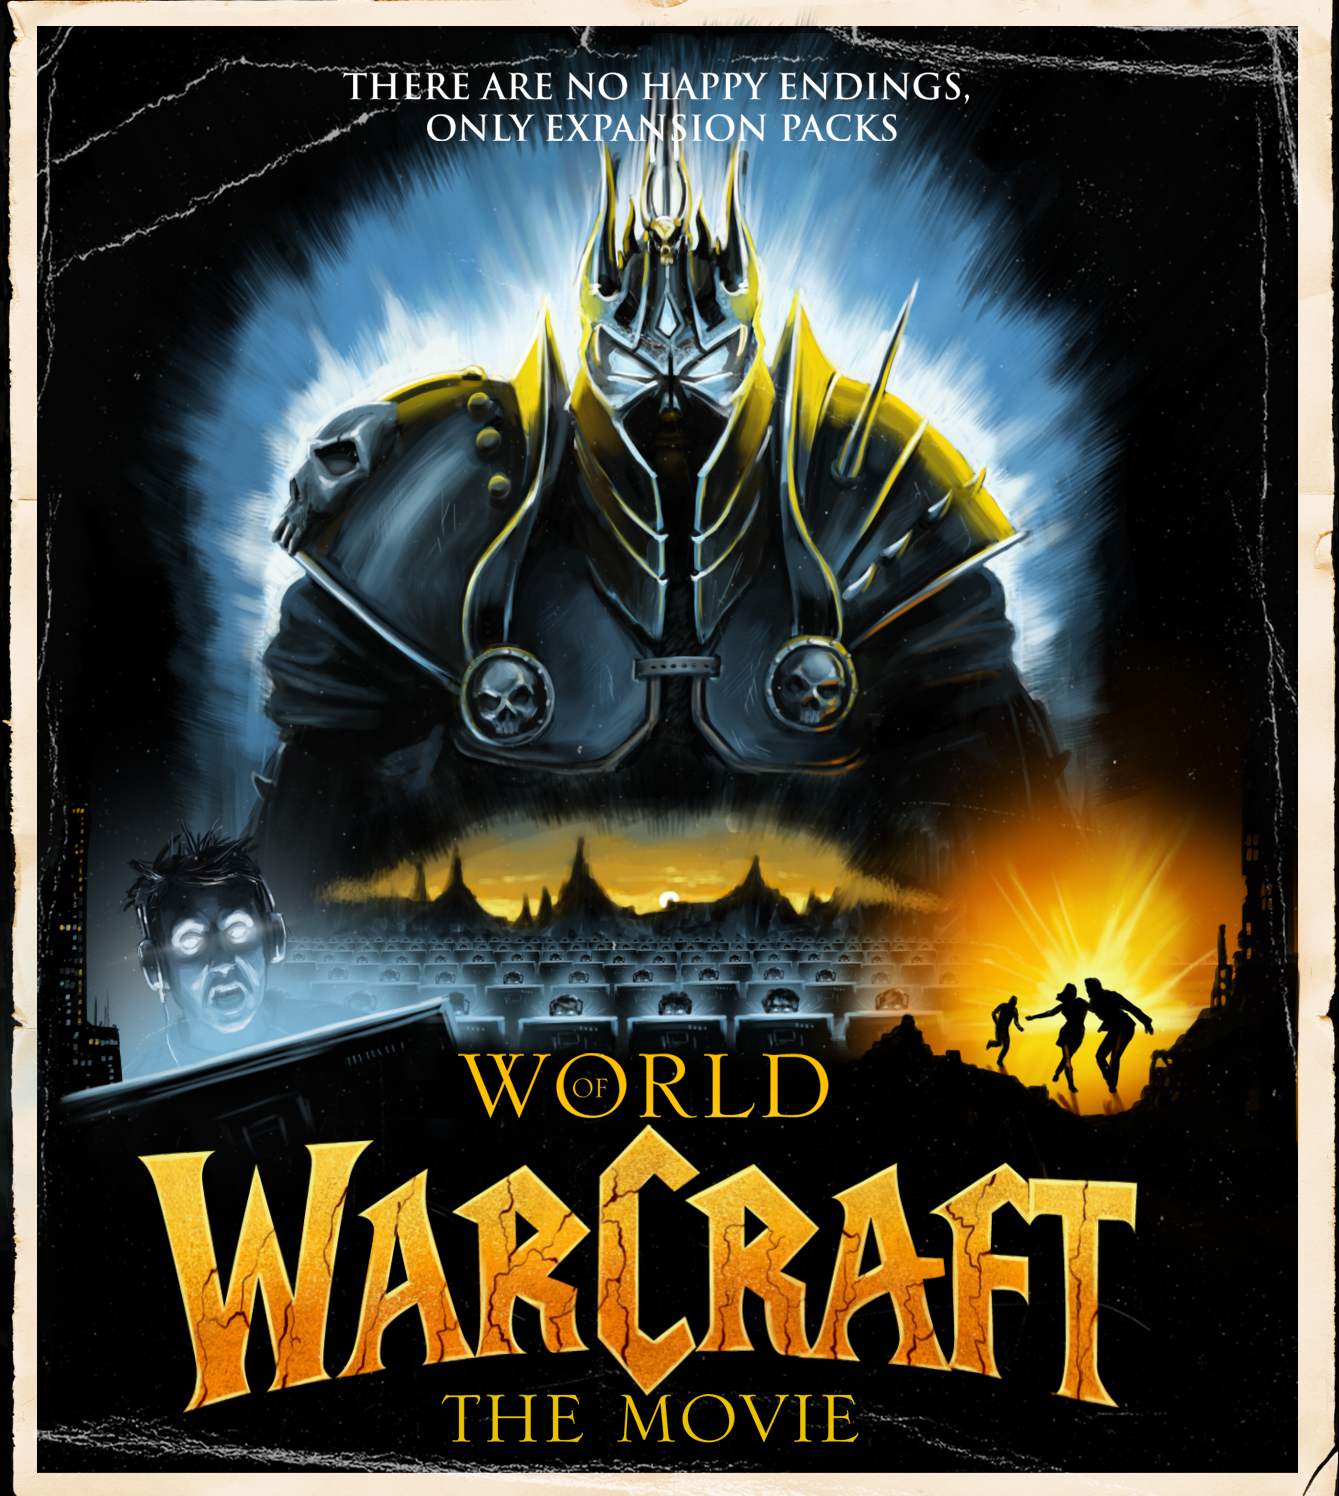 World of Warcraft / Wired